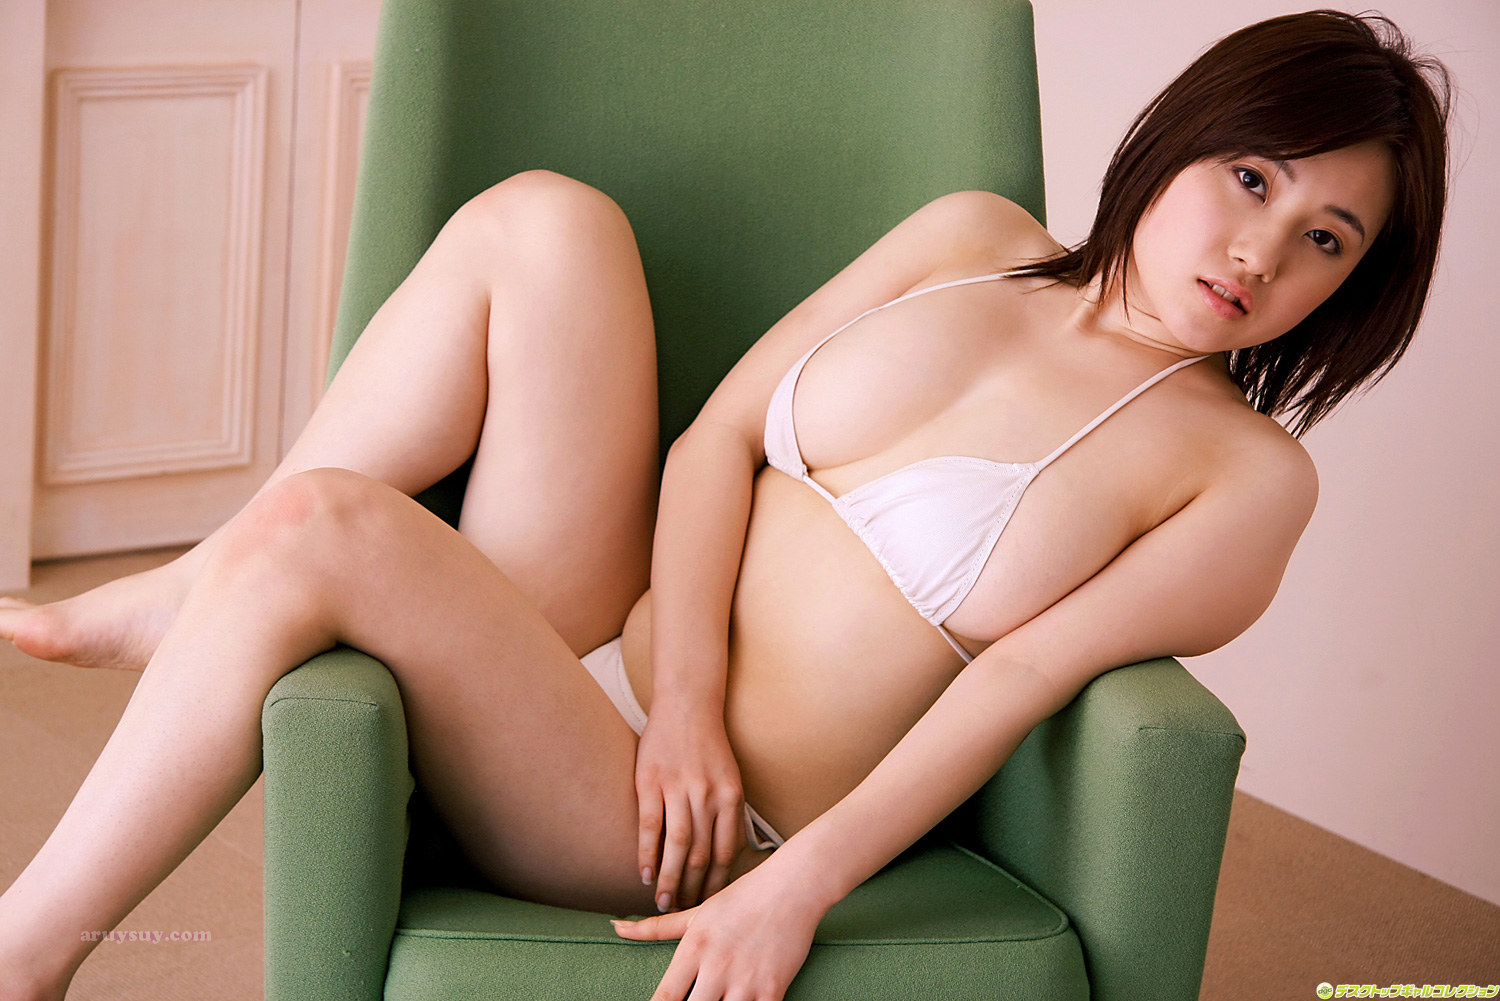 Photos of nude young girls